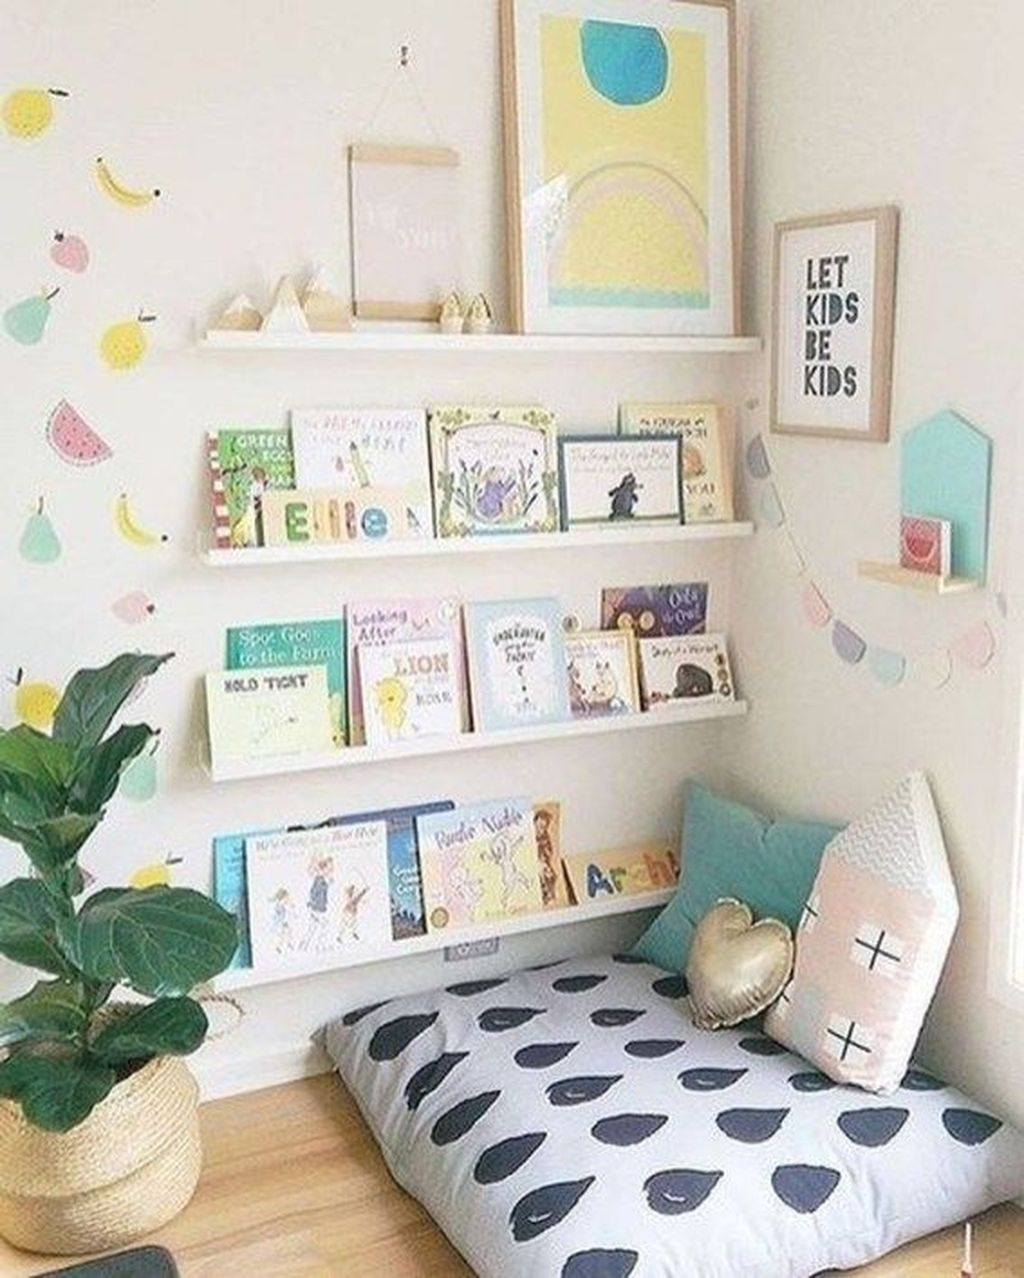 Inspiring Kids Room Design Ideas 29